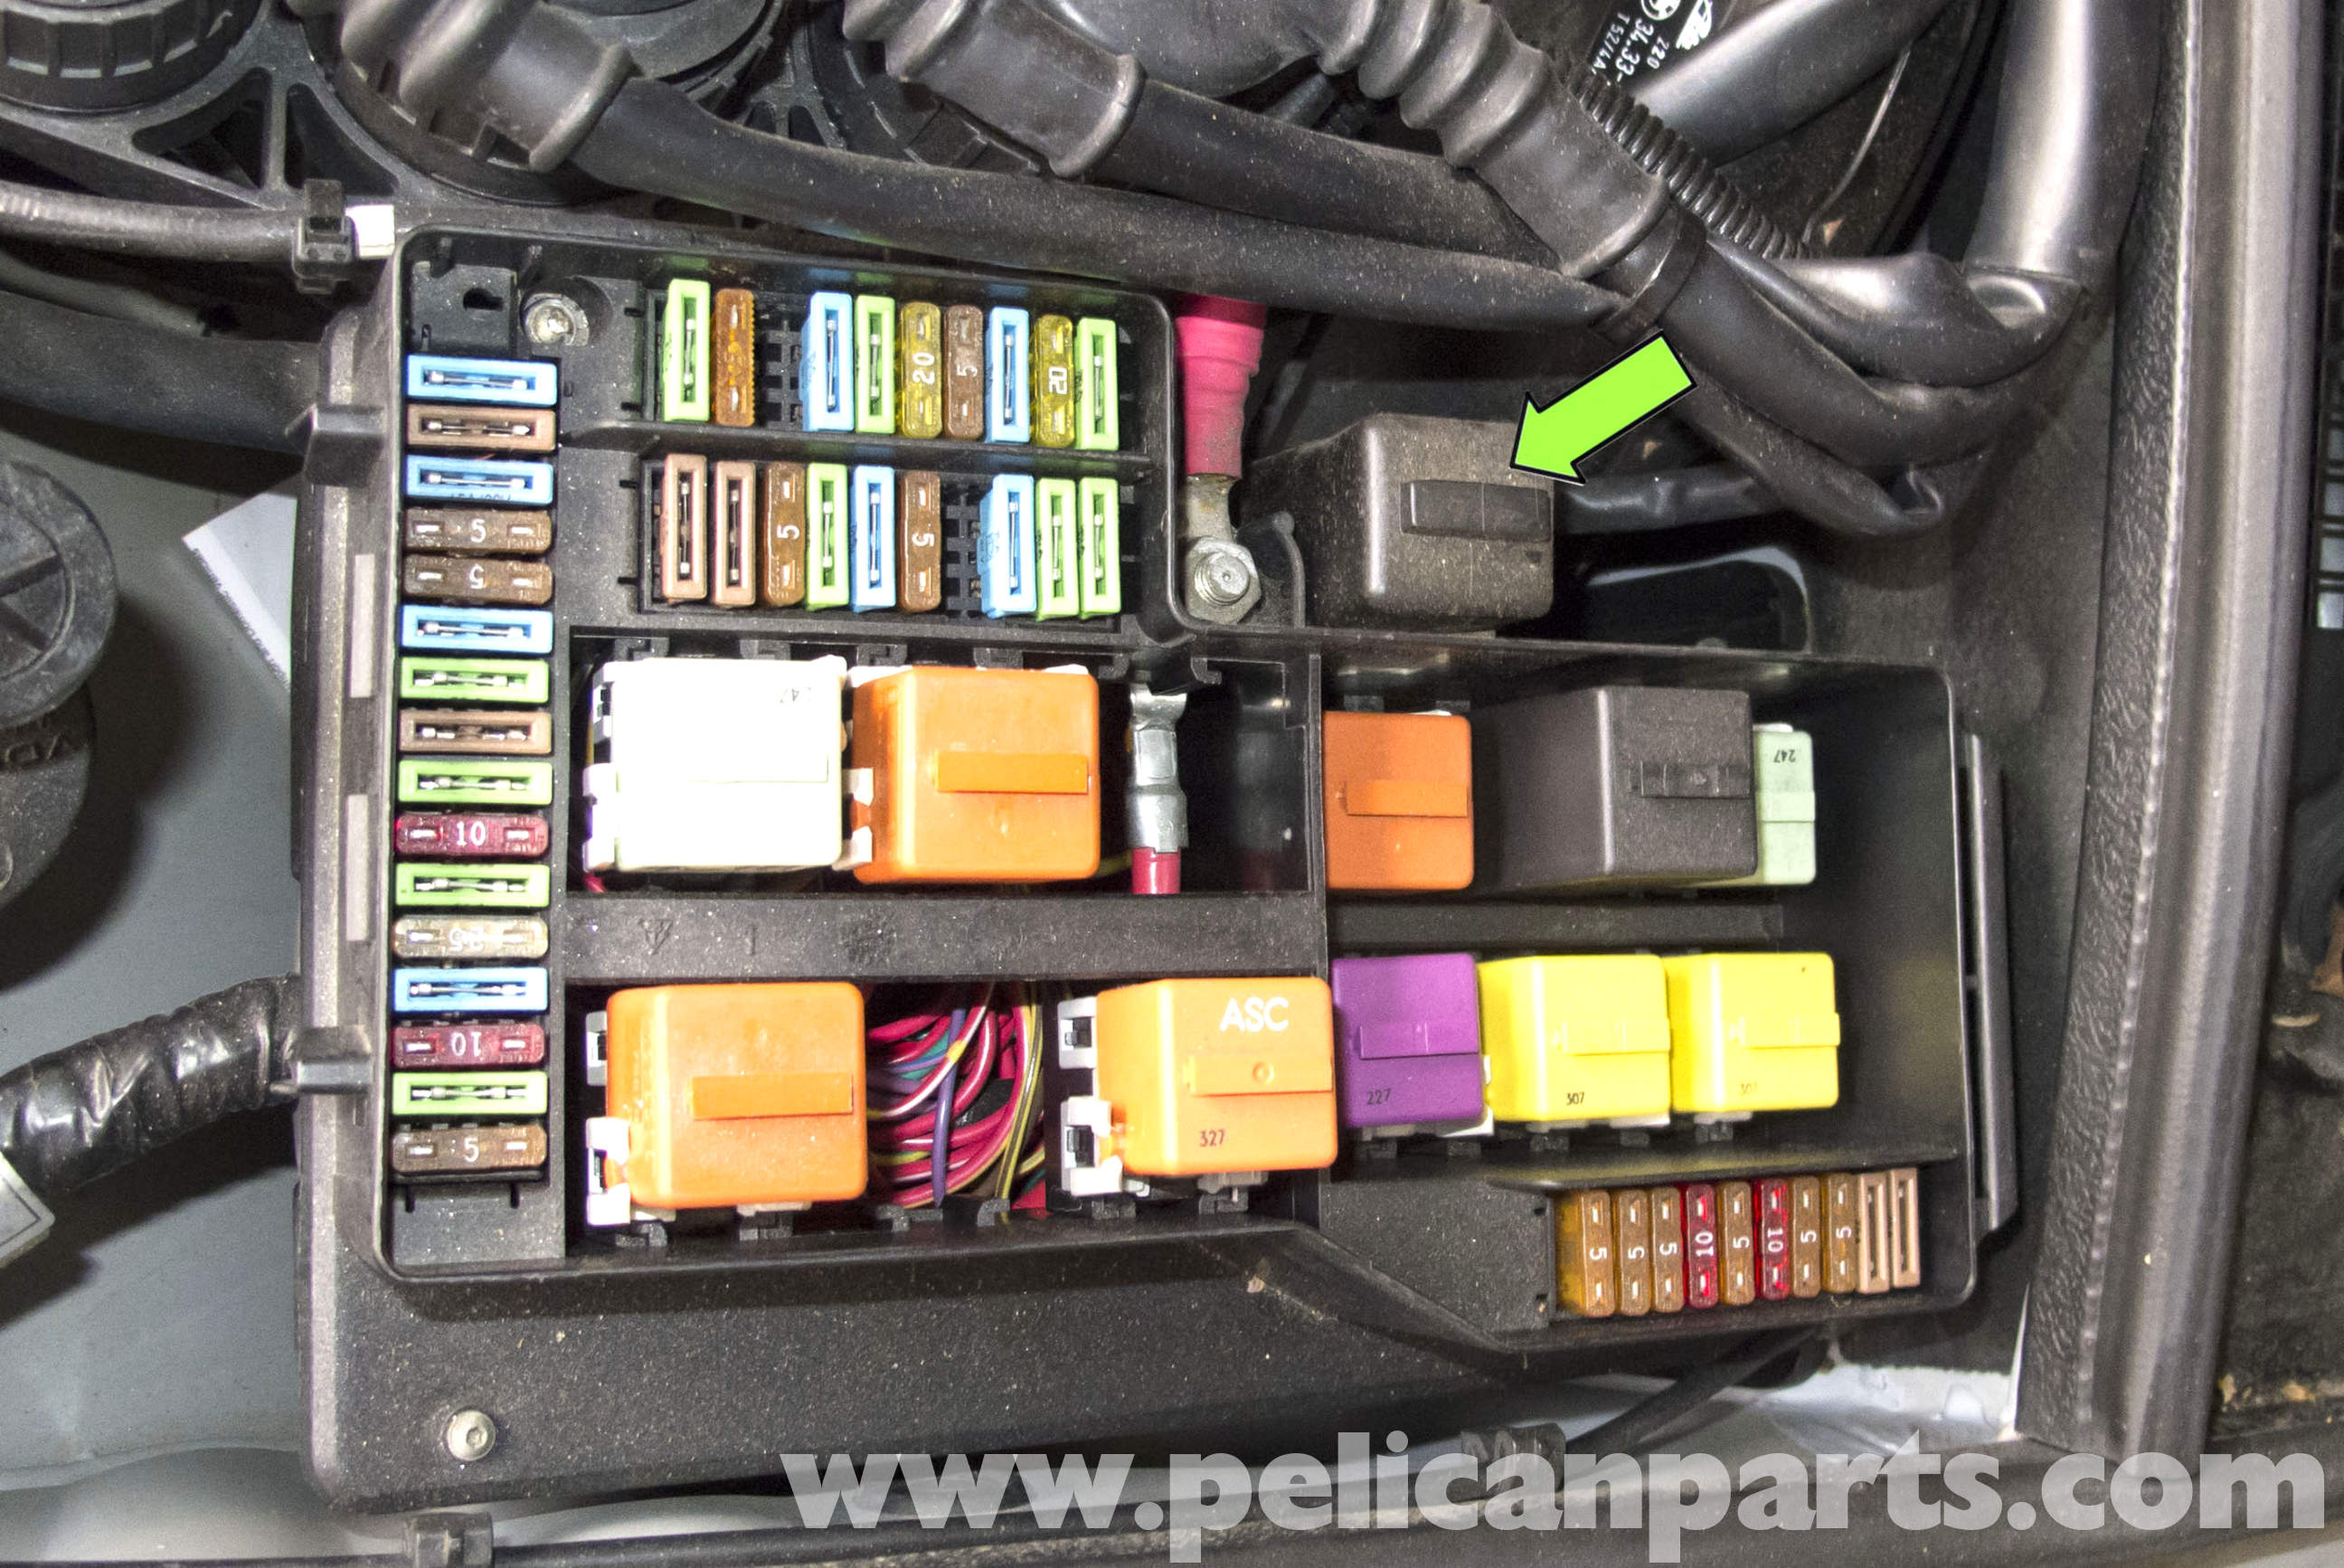 1998 jeep cherokee fuse box location 1996 jeep cherokee fuse box location bmw z3 secondary air system testing 1996 2002 pelican